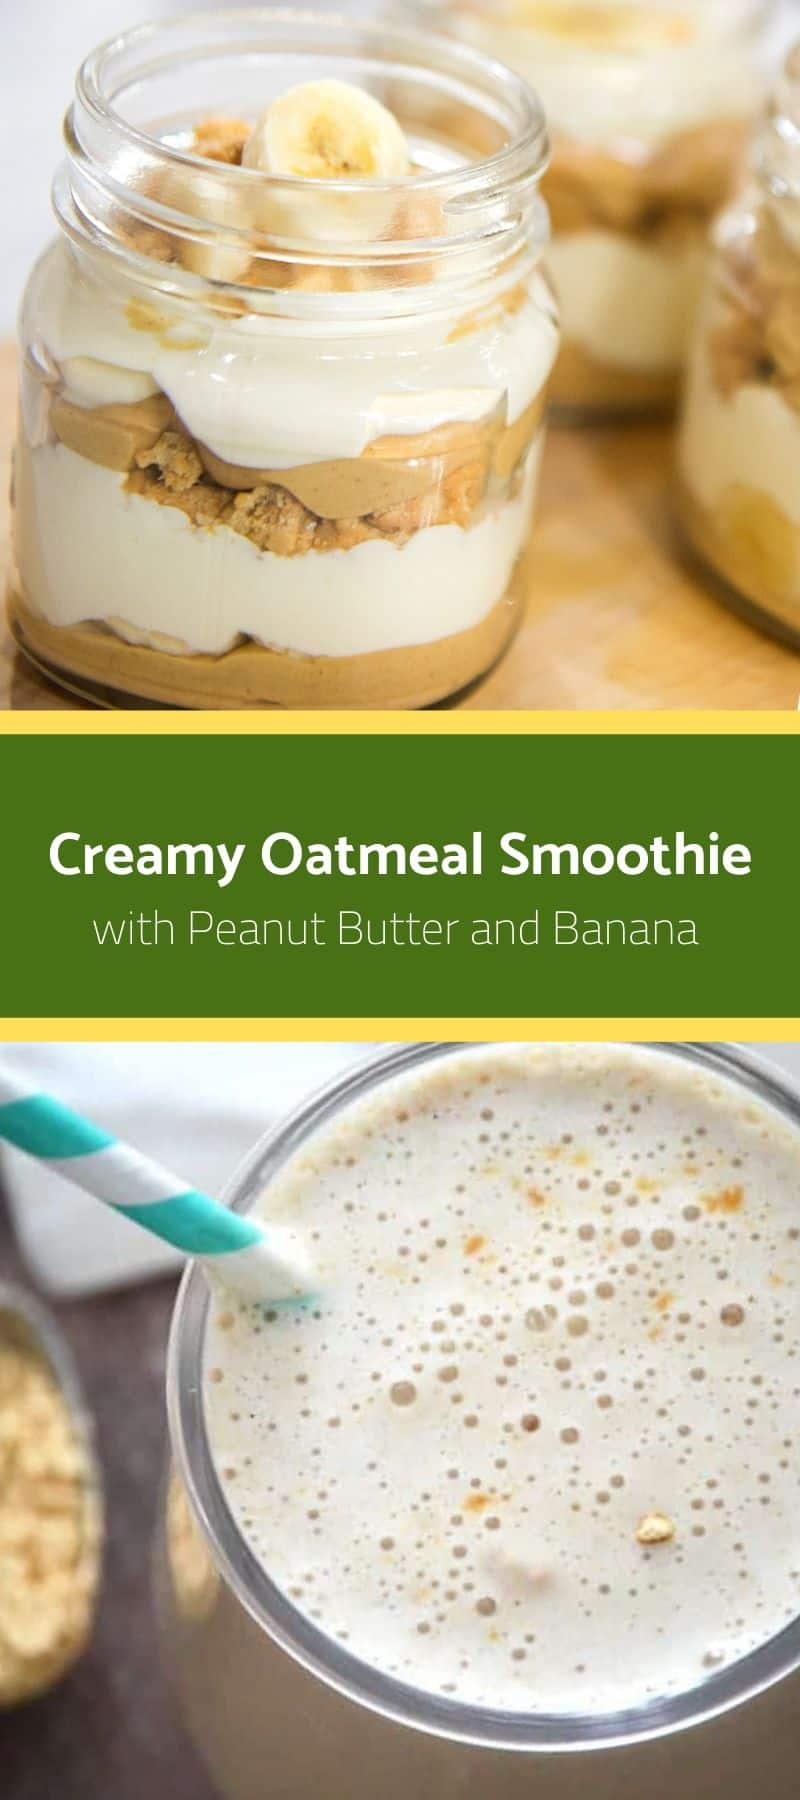 Creamy Oatmeal Smoothie with Peanut Butter and Banana 3